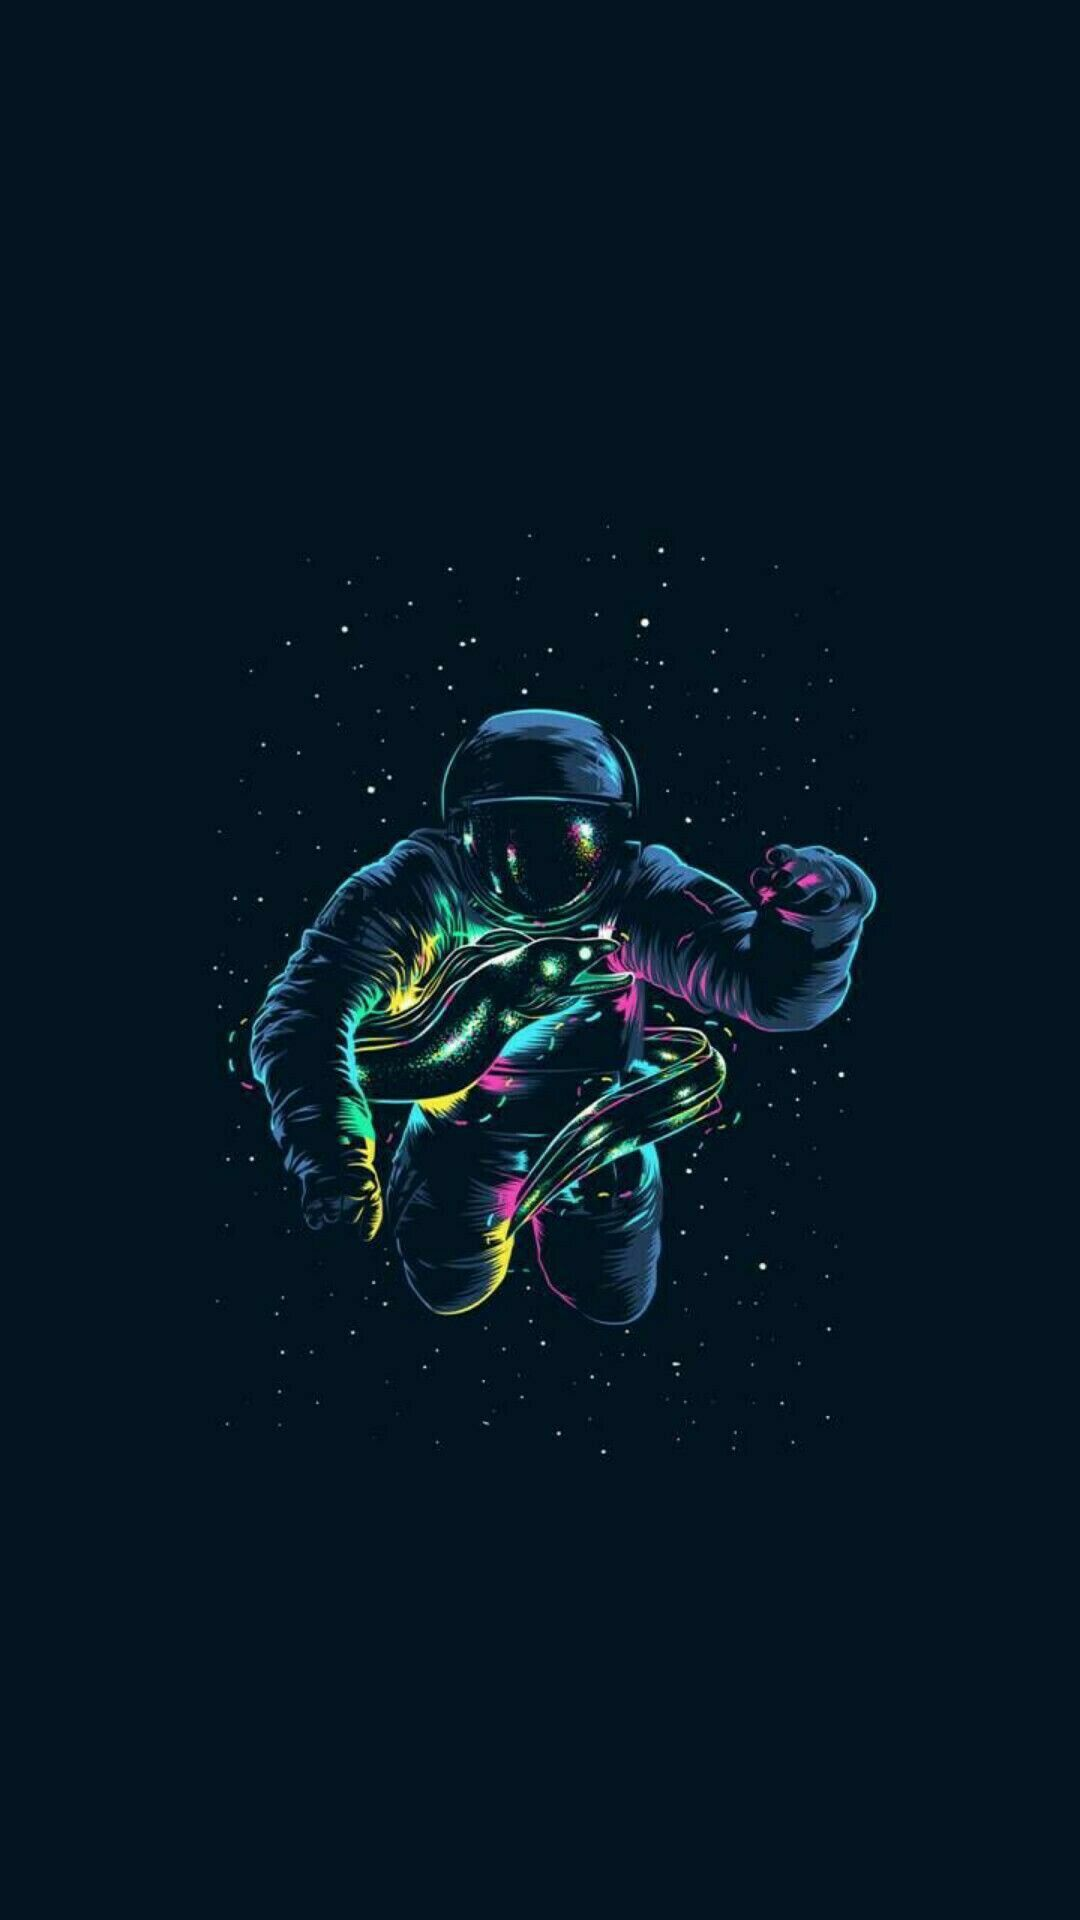 Pin By Hendie Purwiliarto On Phone Backgrounds Hipster 02 Trippy Wallpaper Astronaut Wallpaper Wallpaper Space